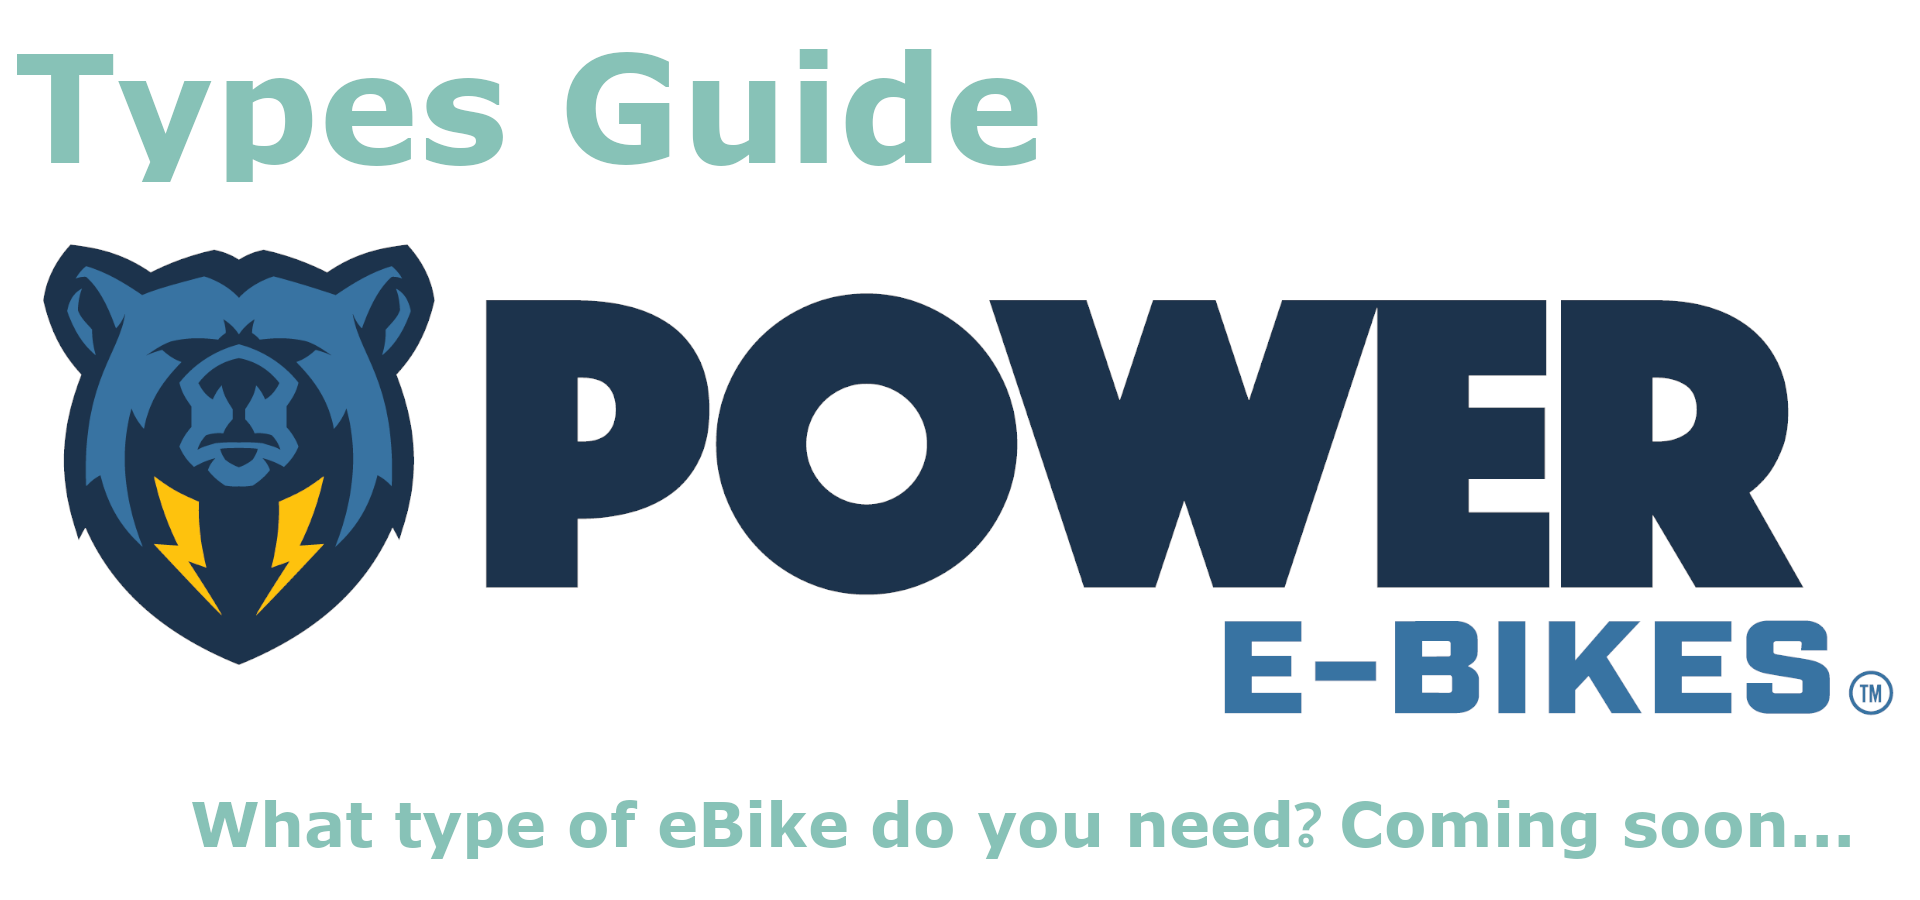 Guide to various types of eBikes coming soon